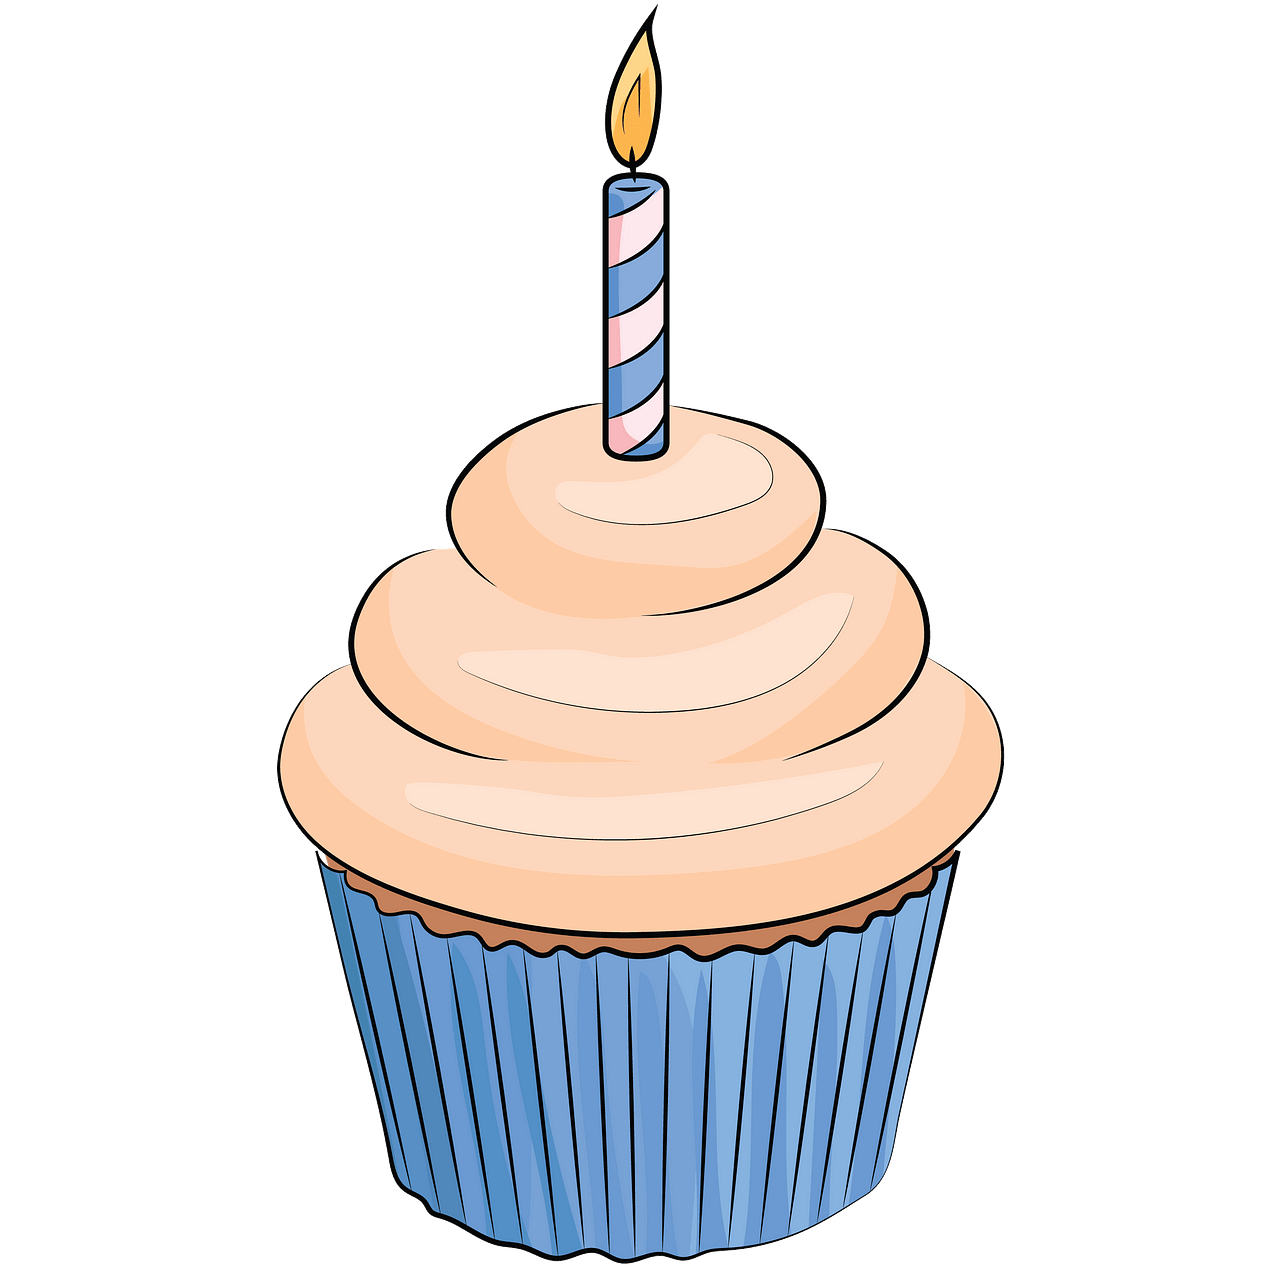 Birthday cupcake clipart. Free download..